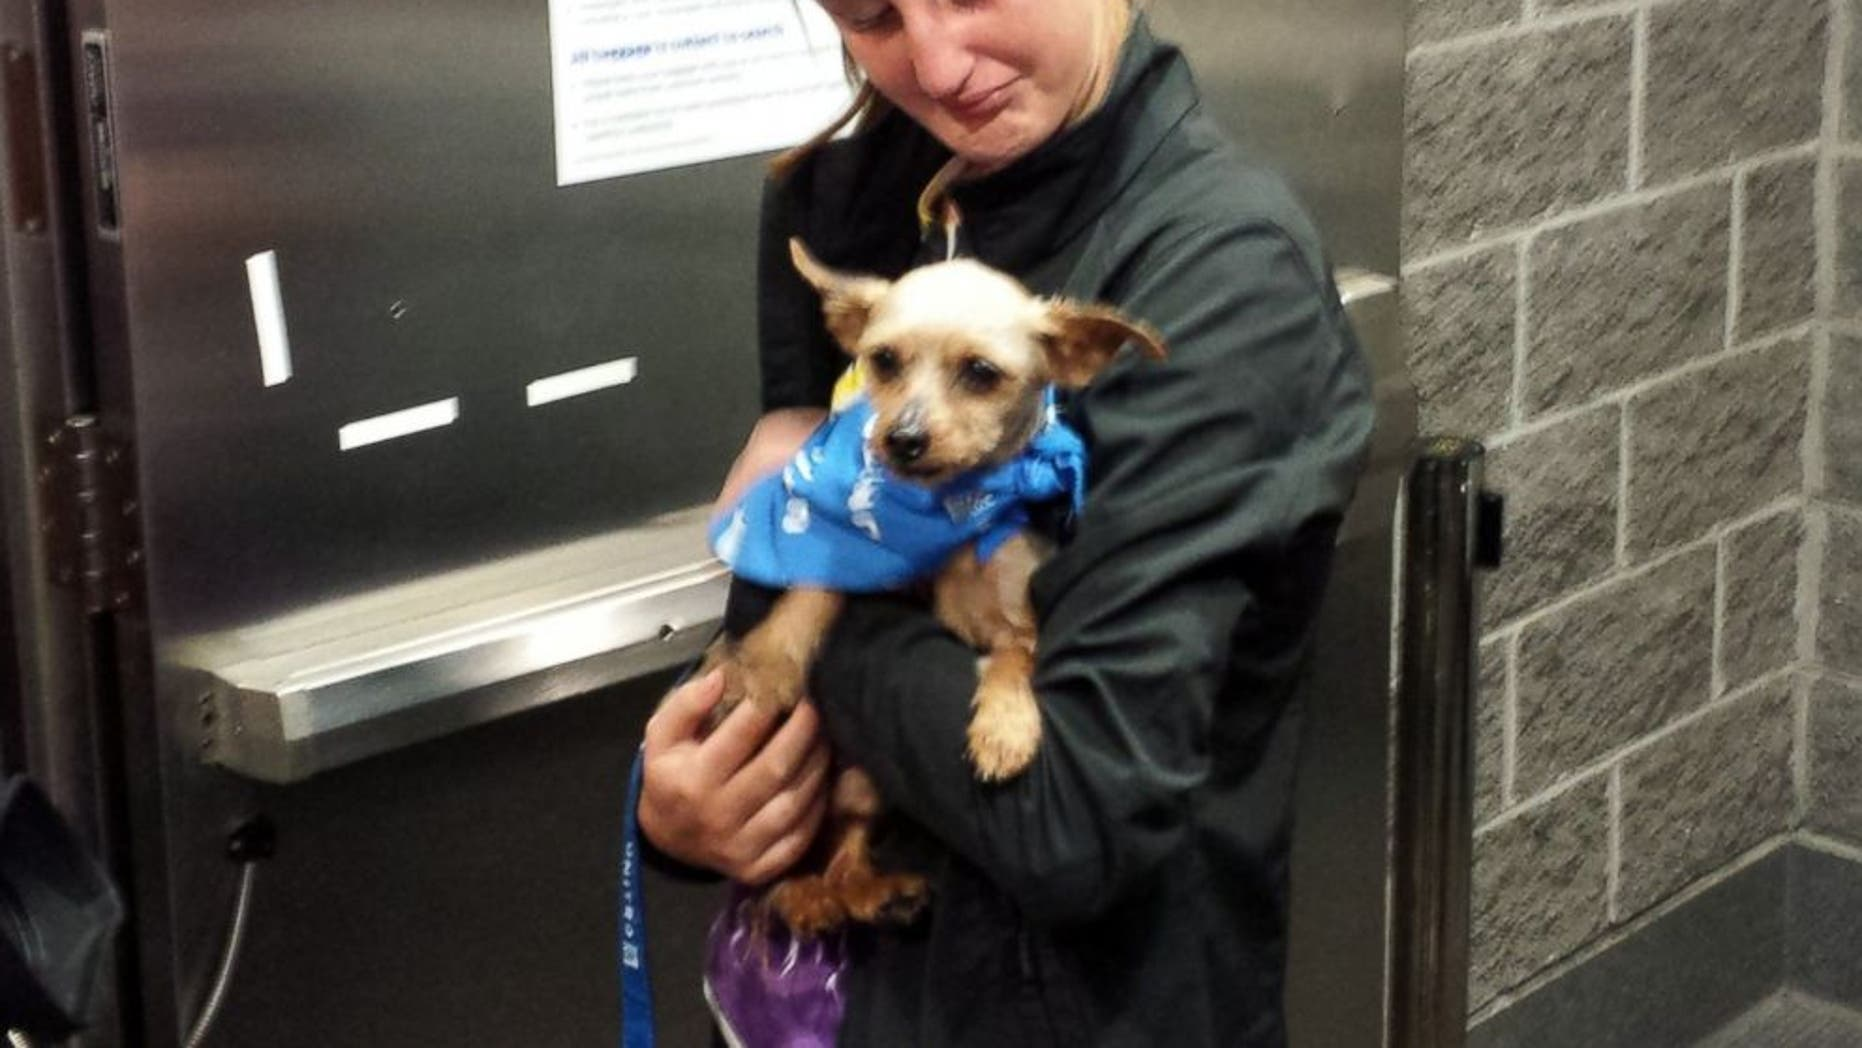 Karisa Lambert of New Orleans is reunited with her terrier Sam after he went missing for nearly four years.